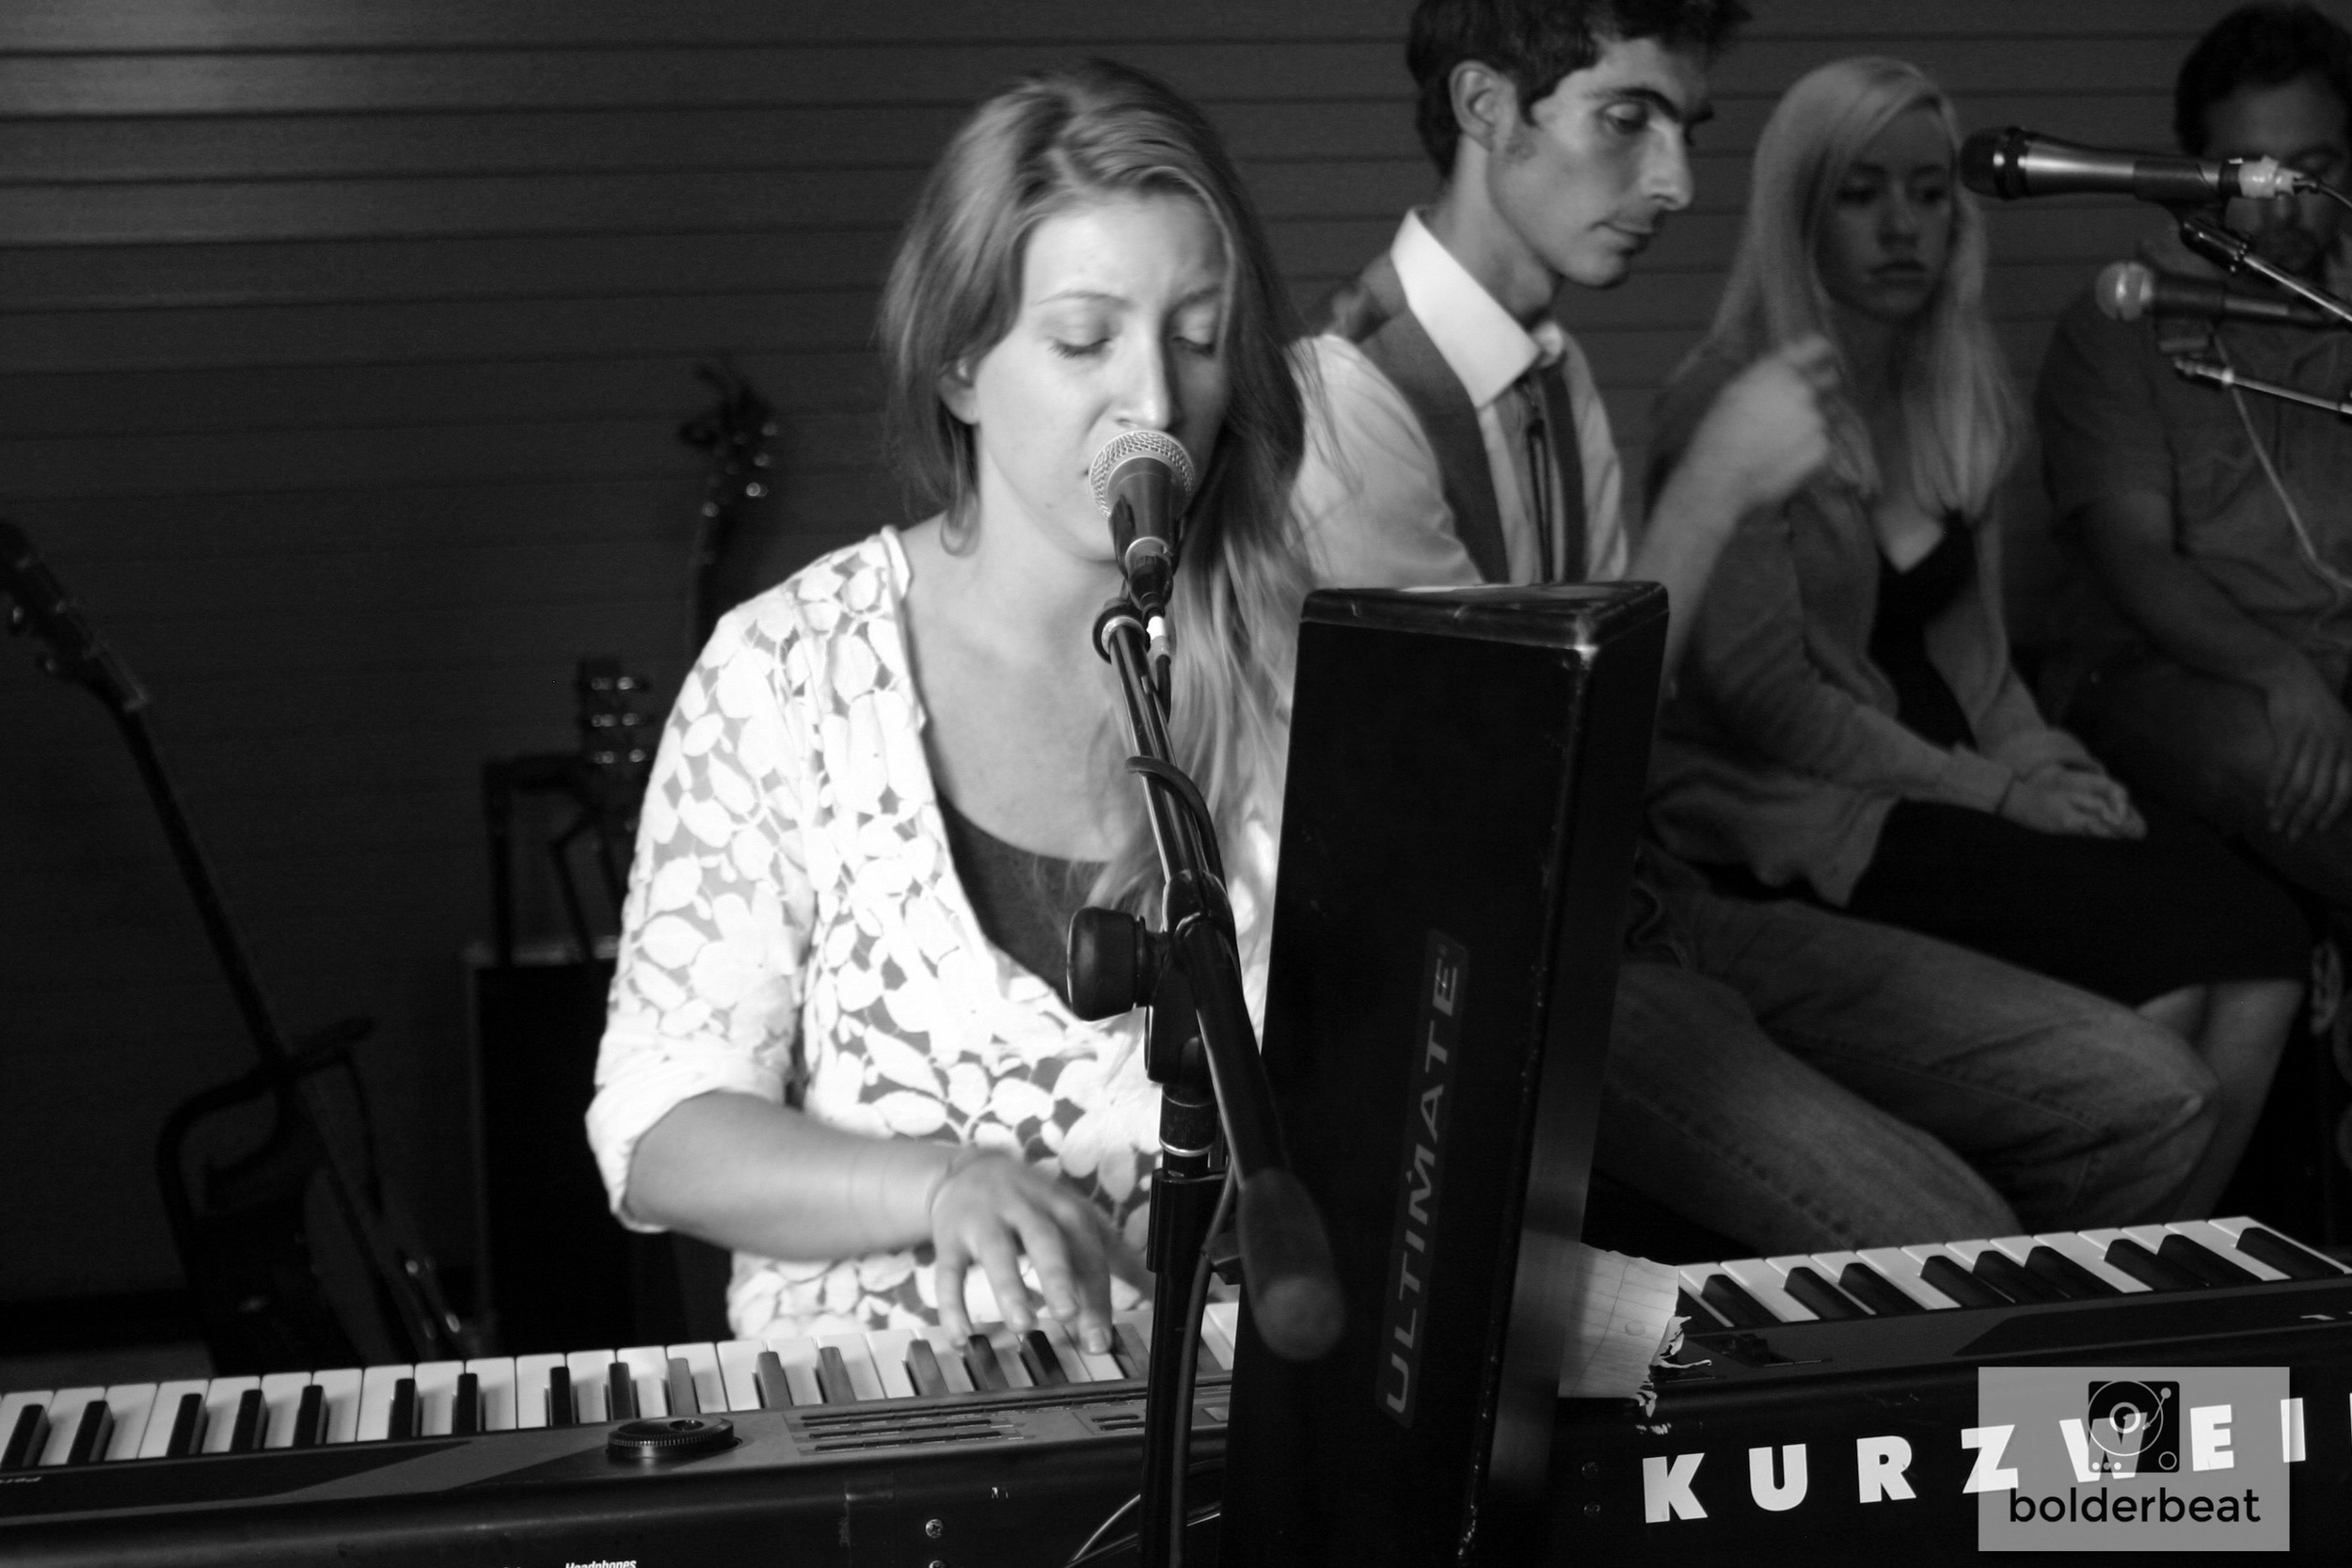 emily and her kurzweil. PHOTO CREDIT:    HANNAH ORESKOVICH